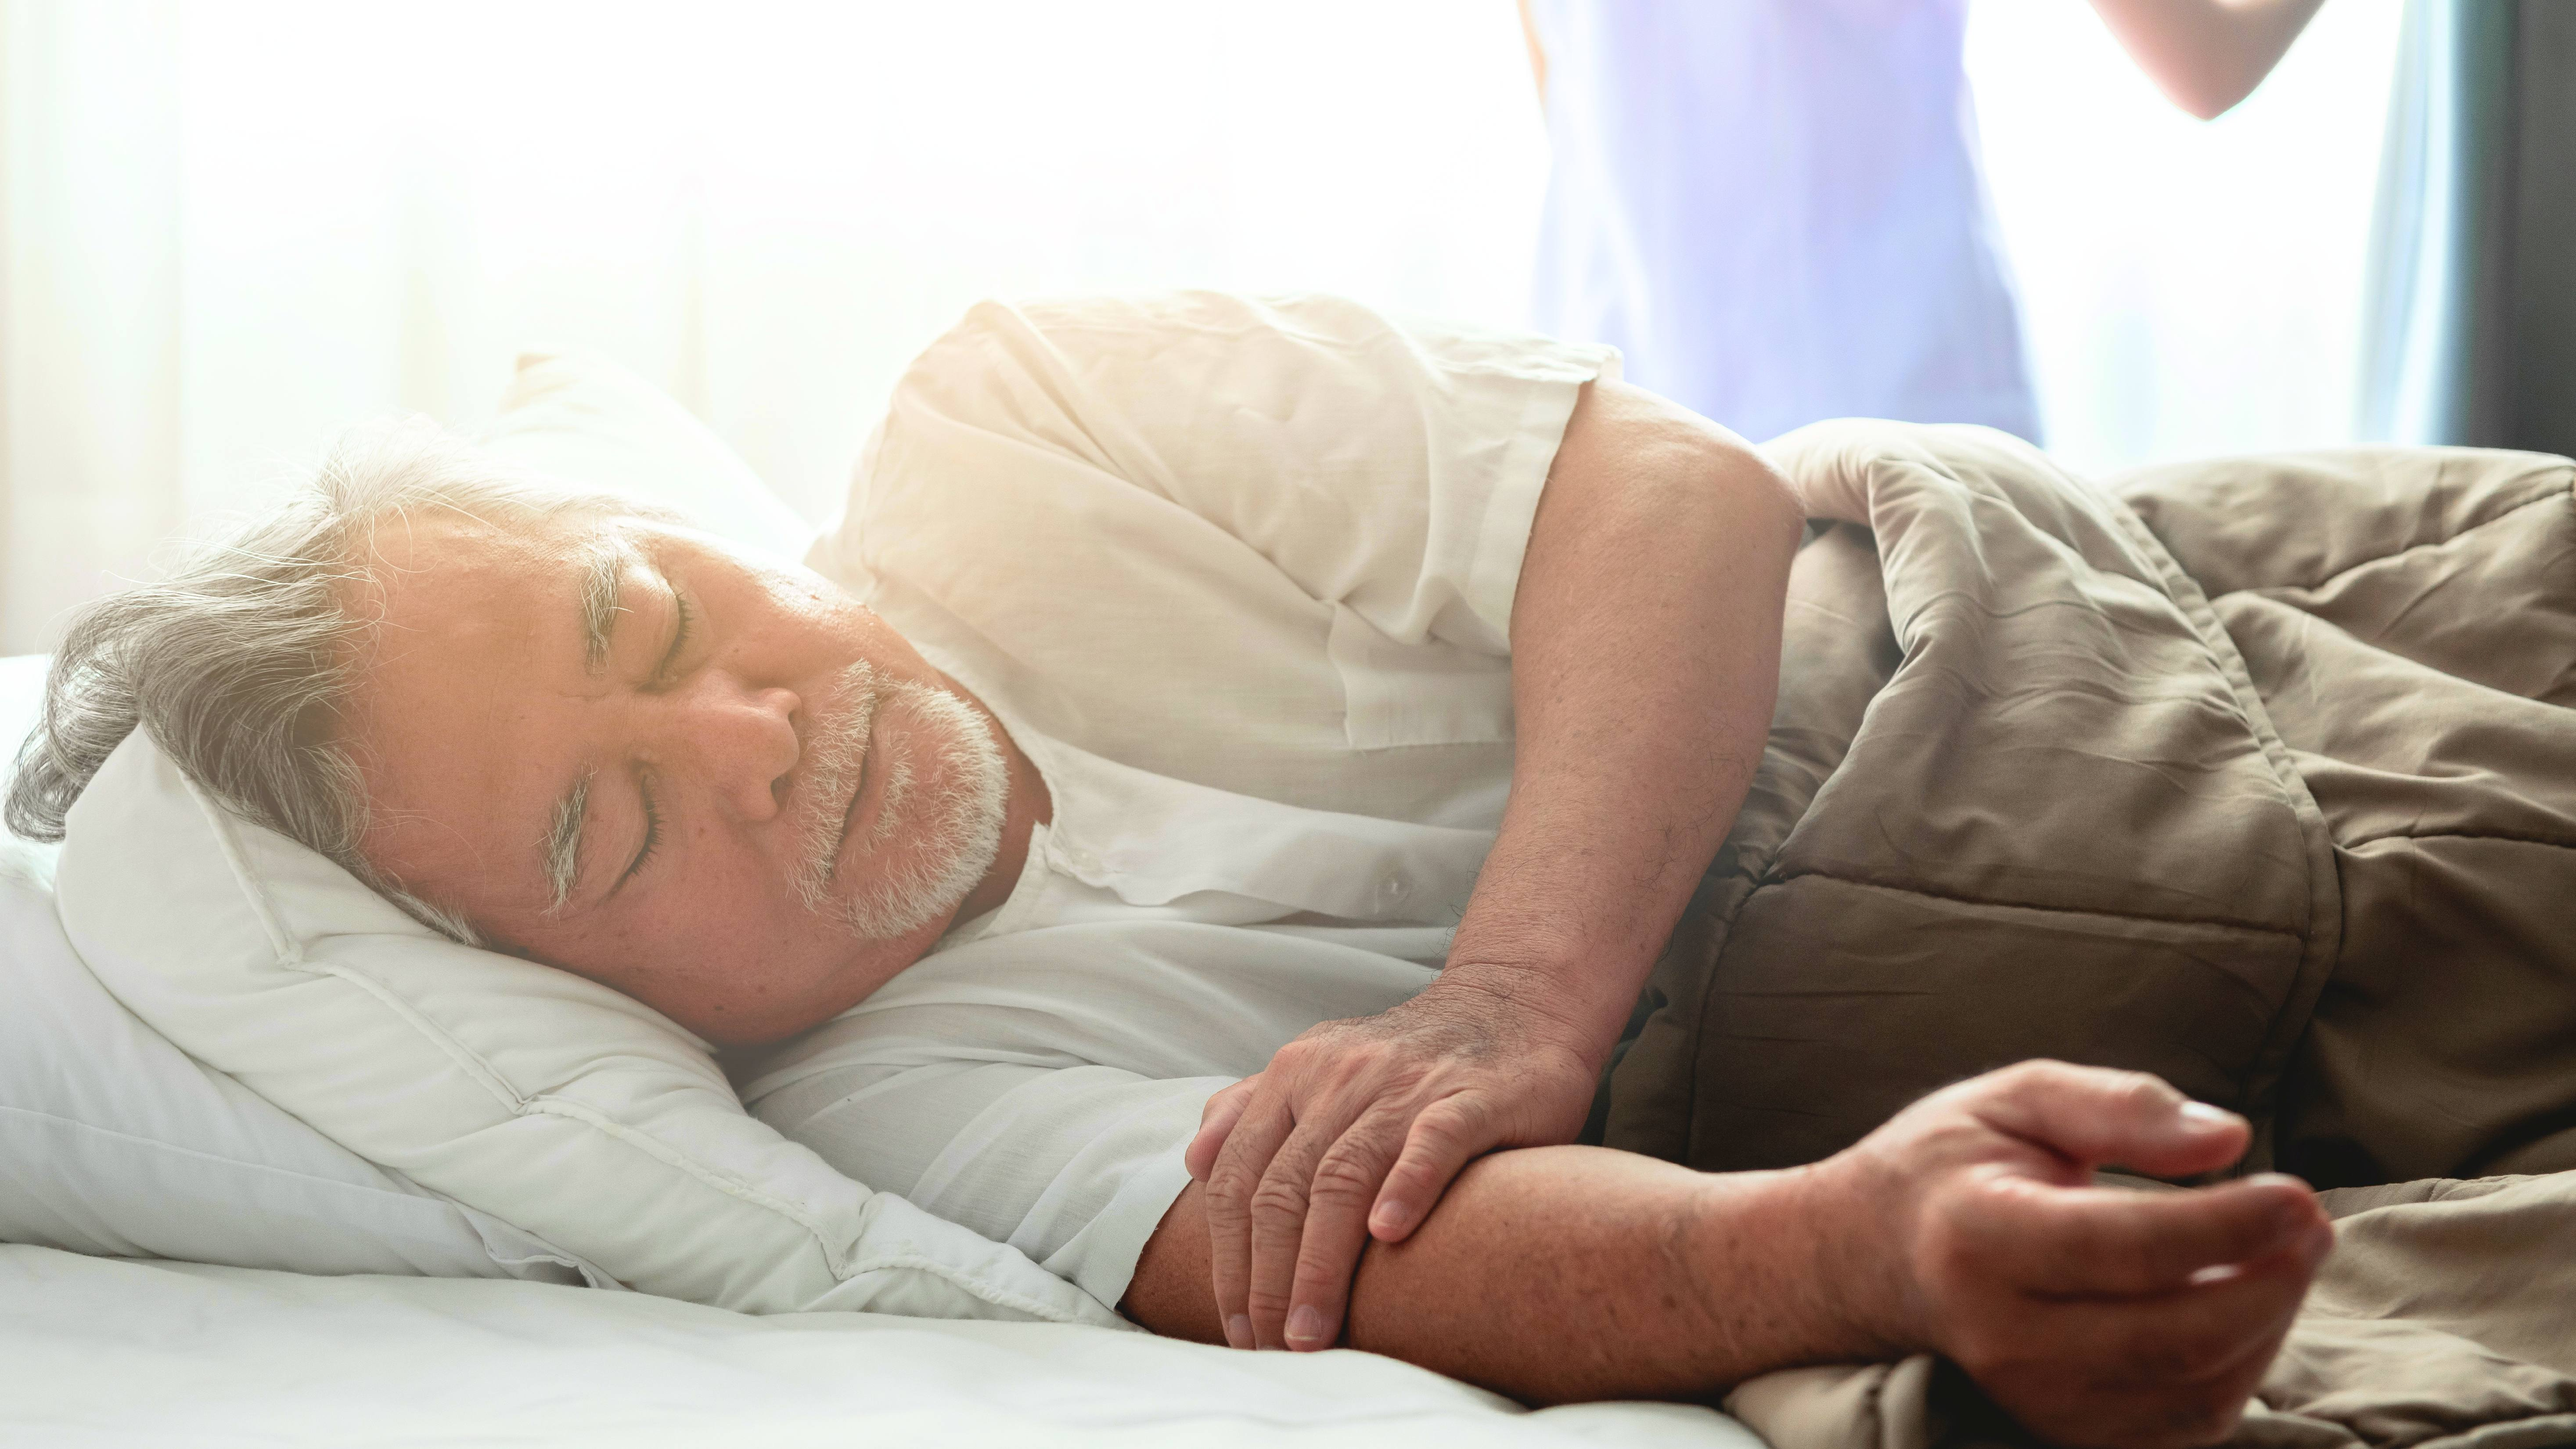 an elderly Asian or Latino man with a beard resting, sleeping under a blanket in bed, perhaps sick with a caregiver in the background opening a curtain